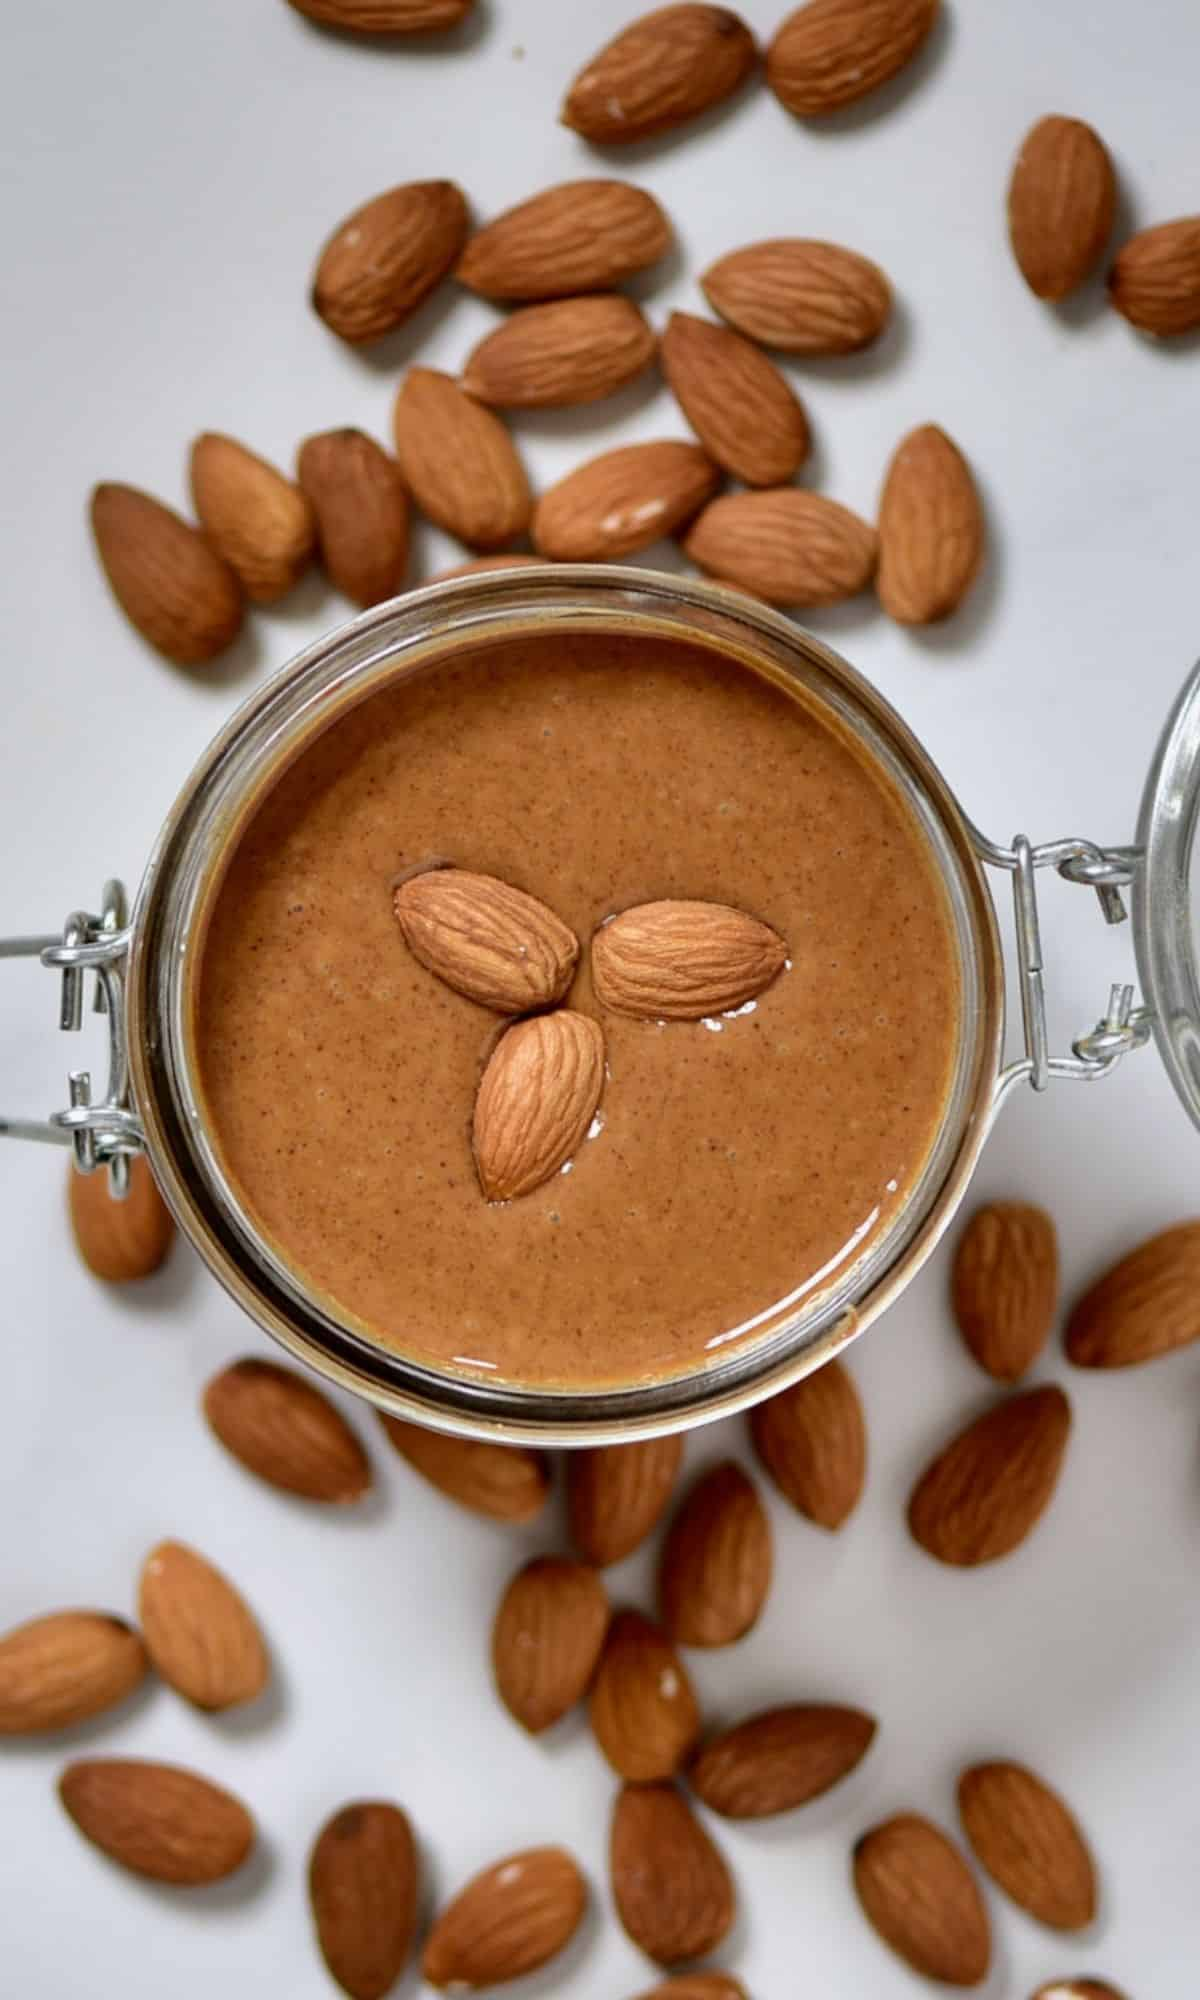 Almond Butter in a jar with almonds around it